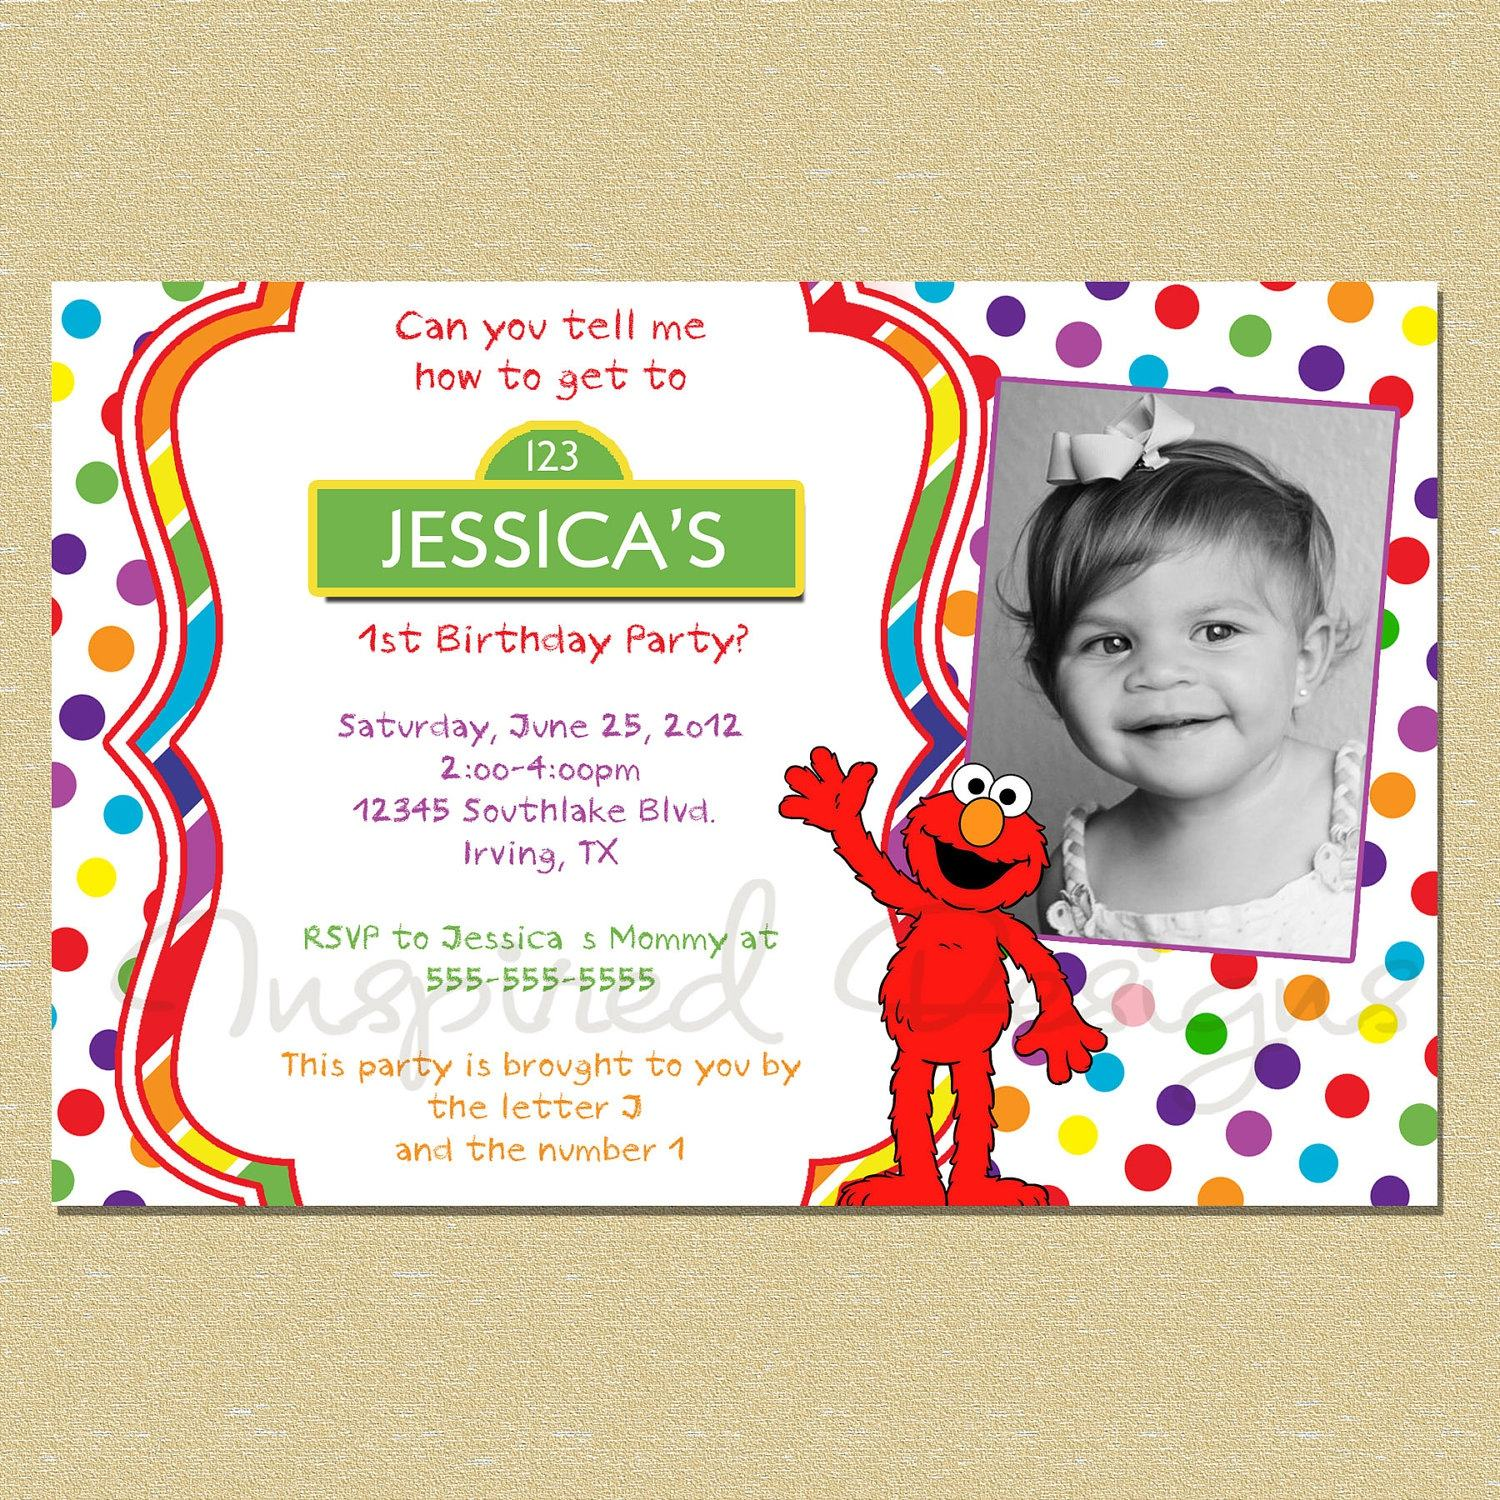 second birthday invitation wording ; 2nd-birthday-sayings-for-invitations-download-now-2nd-birthday-invitation-wording-new-2nd-birthday-invitation-card-of-2nd-birthday-sayings-for-invitations